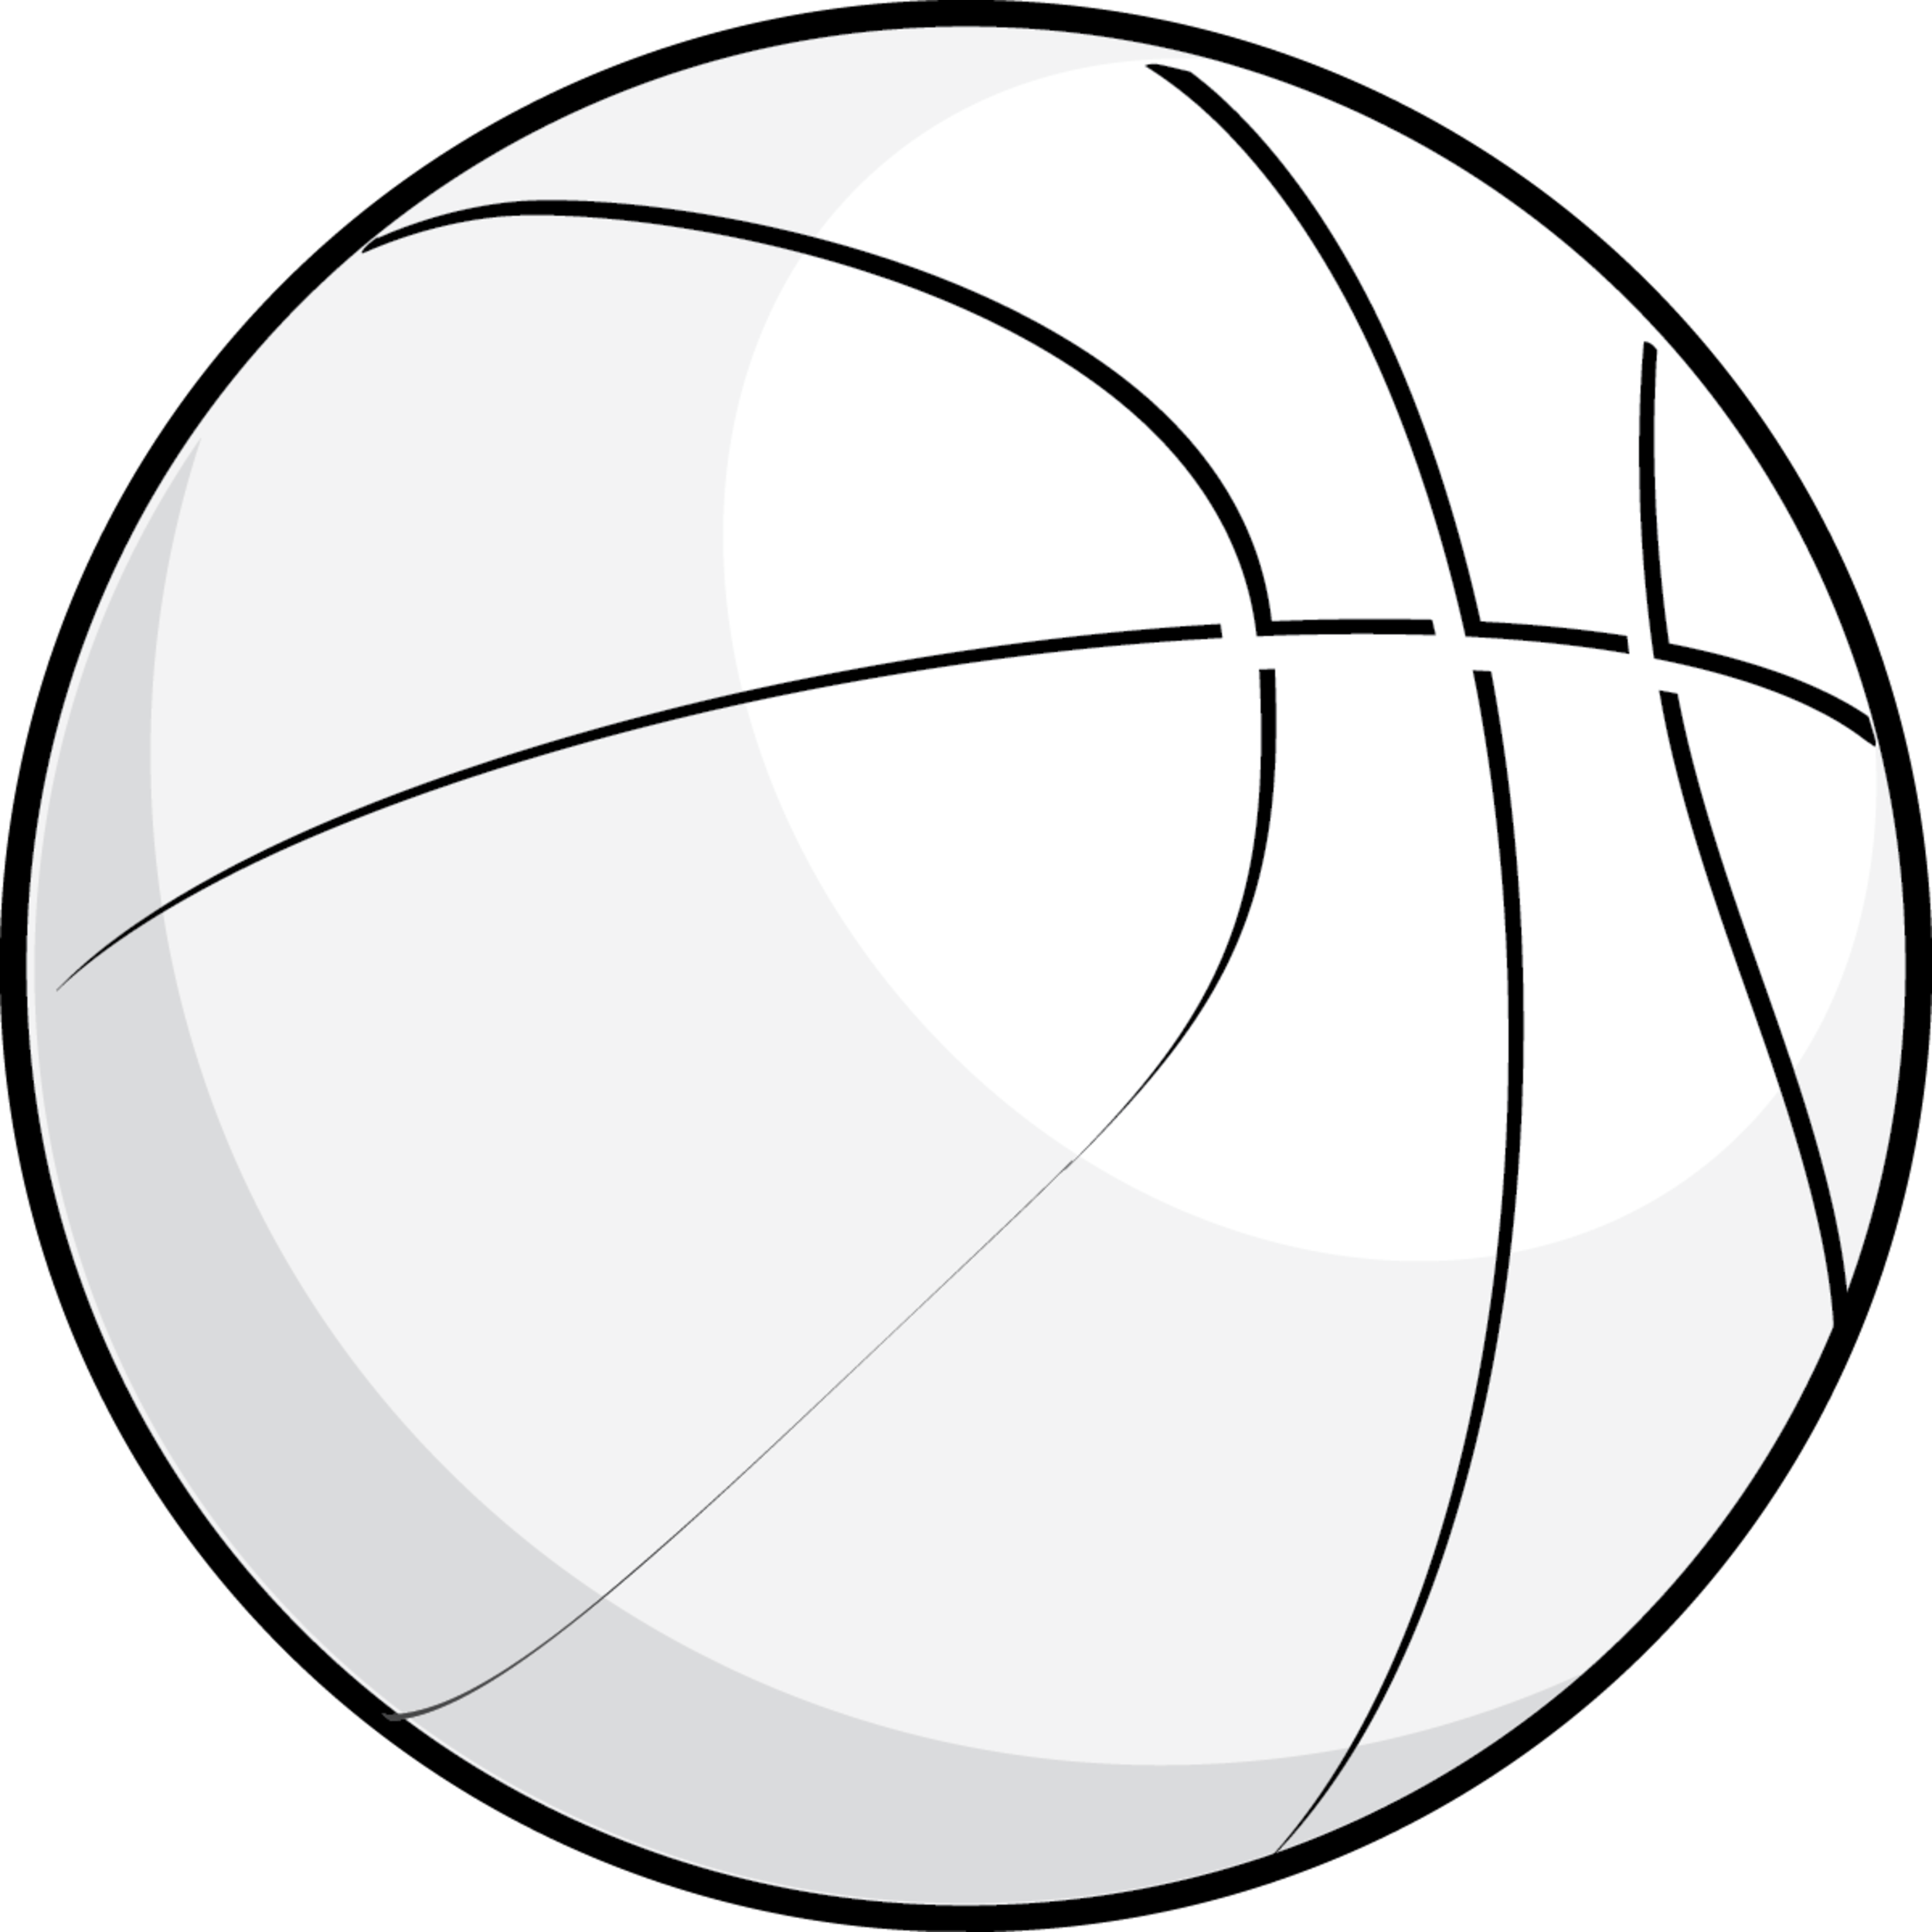 Basketball Clipart Black And White Free